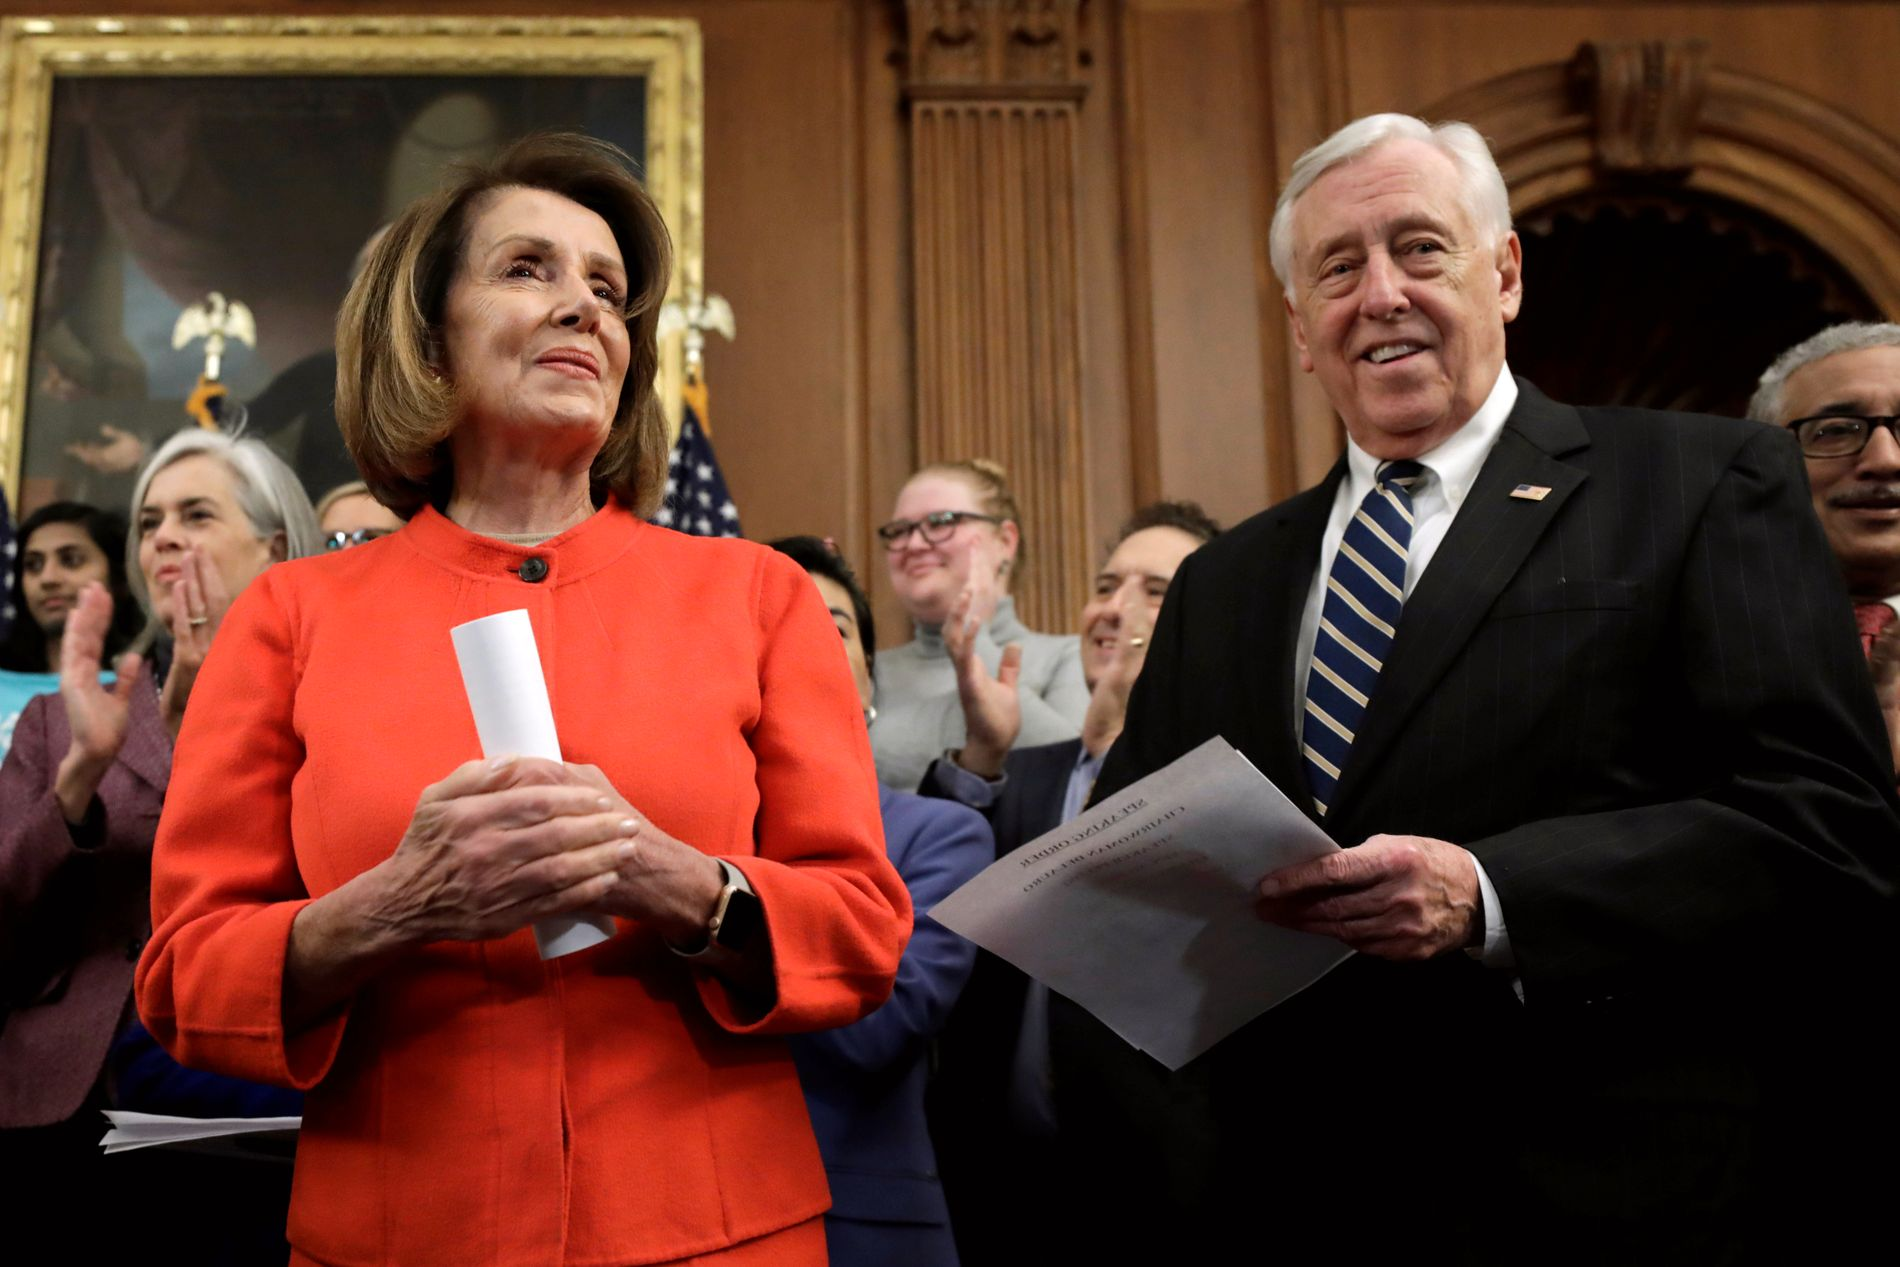 PARTITOPPER: Demokratene Nancy Pelosi og Steny Hoyer